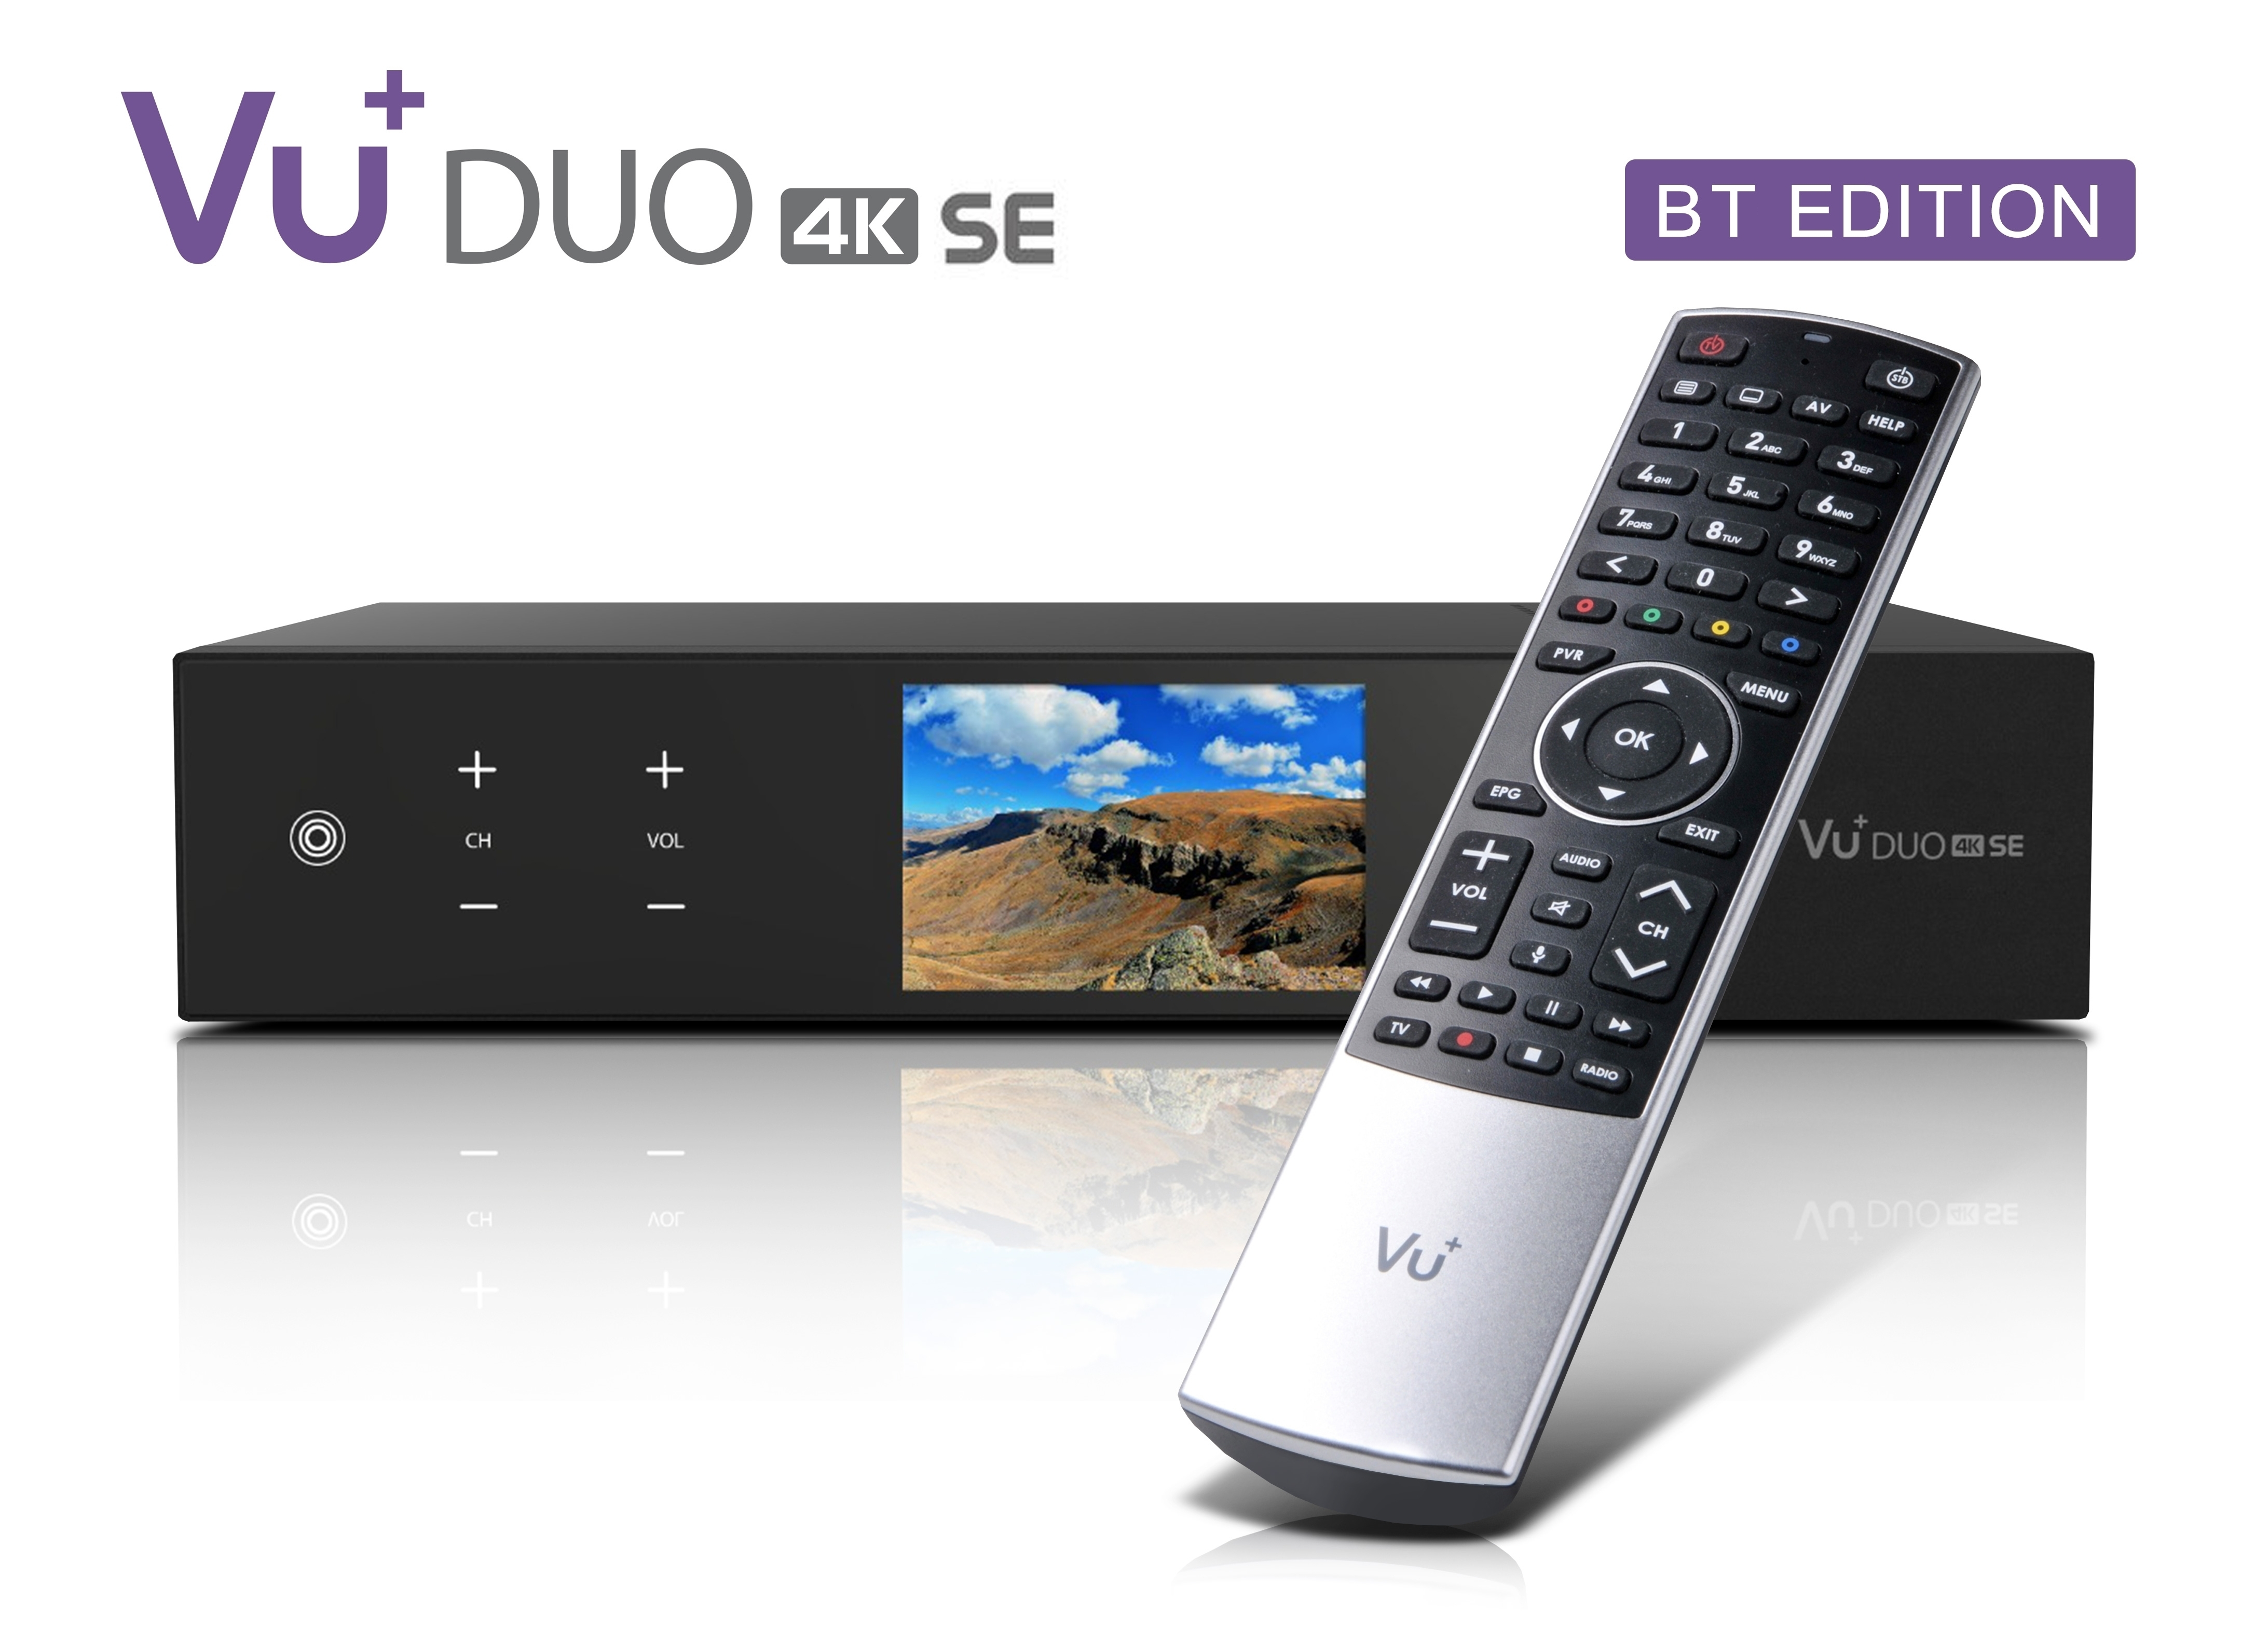 VU+ Duo 4K SE BT 1x DVB-S2X FBC Twin / 1x DVB-C FBC Tuner PVR ready Linux Receiver UHD 2160p